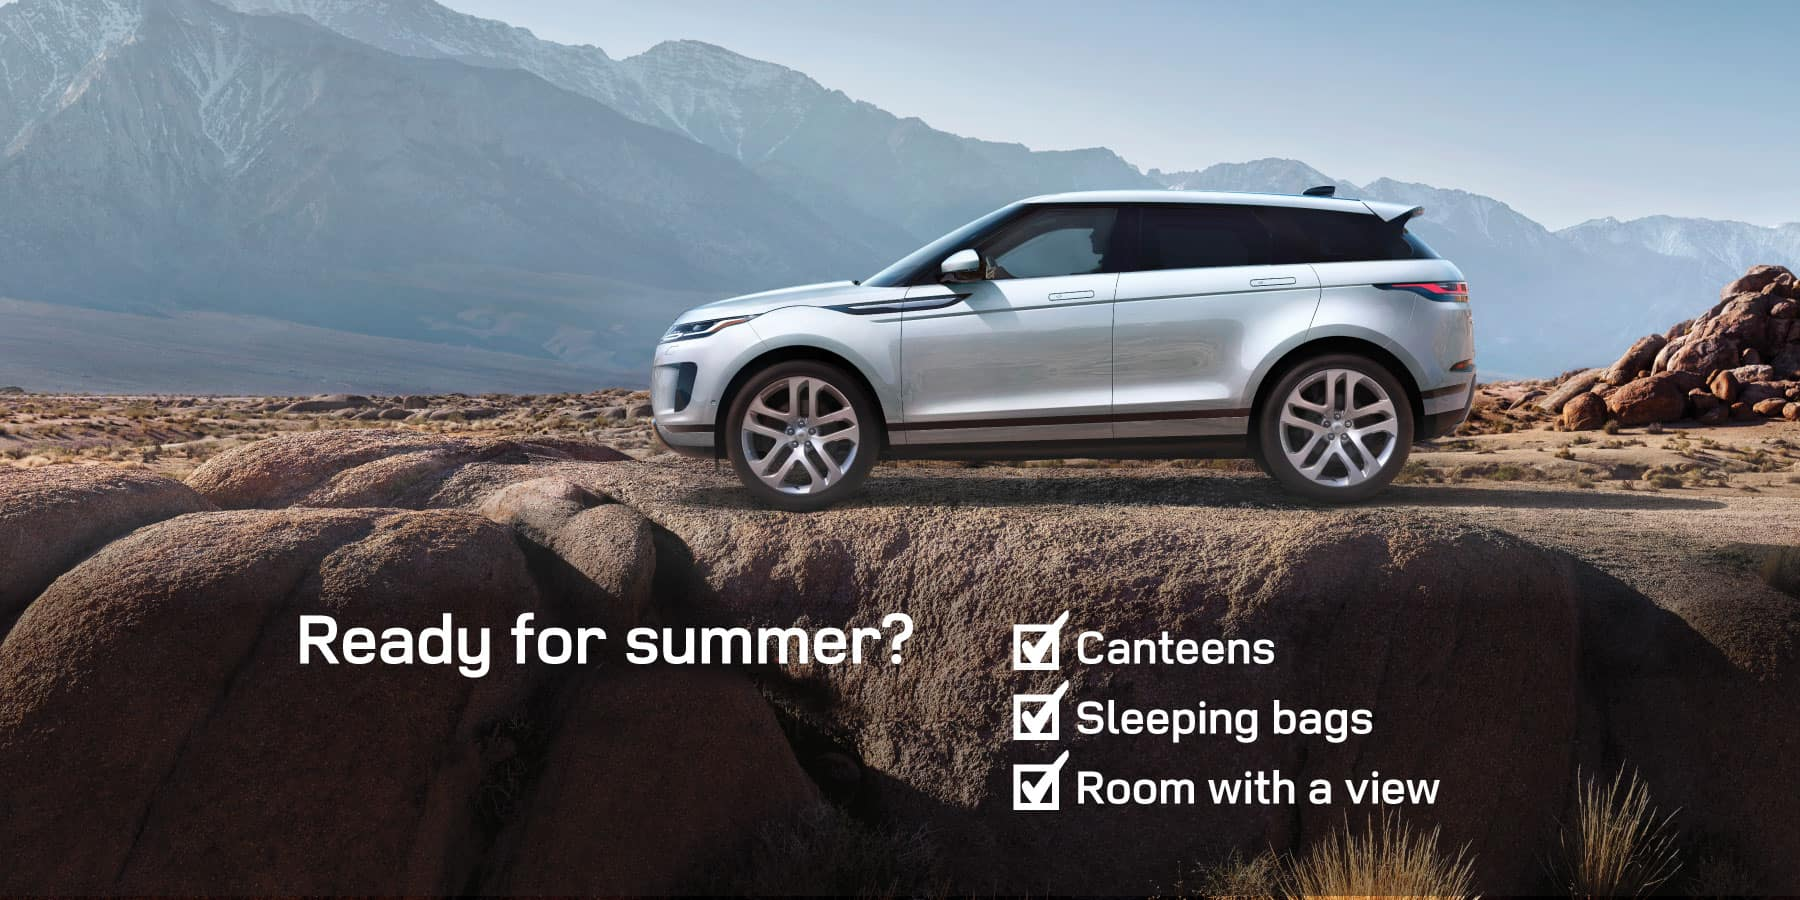 Autobahn Land Rover Fort Worth | Ready for the Summer?